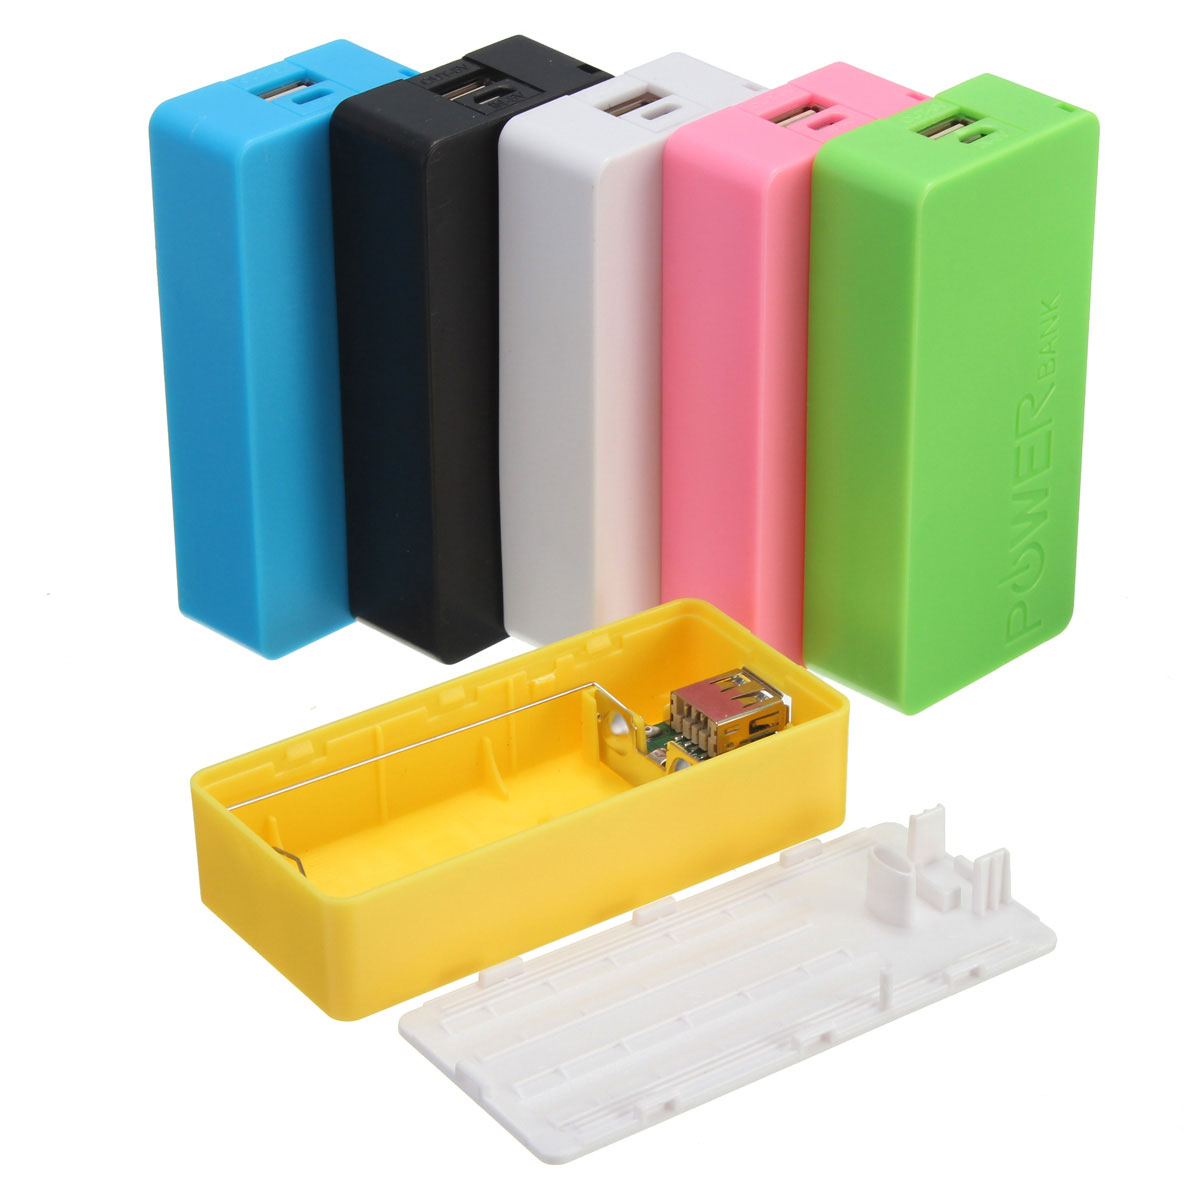 Multicolor Portable Safety USB Power Bank 2x 18650 Battery Charger DIY Box Case Kit universal Pro for all Smart Cellphone Device